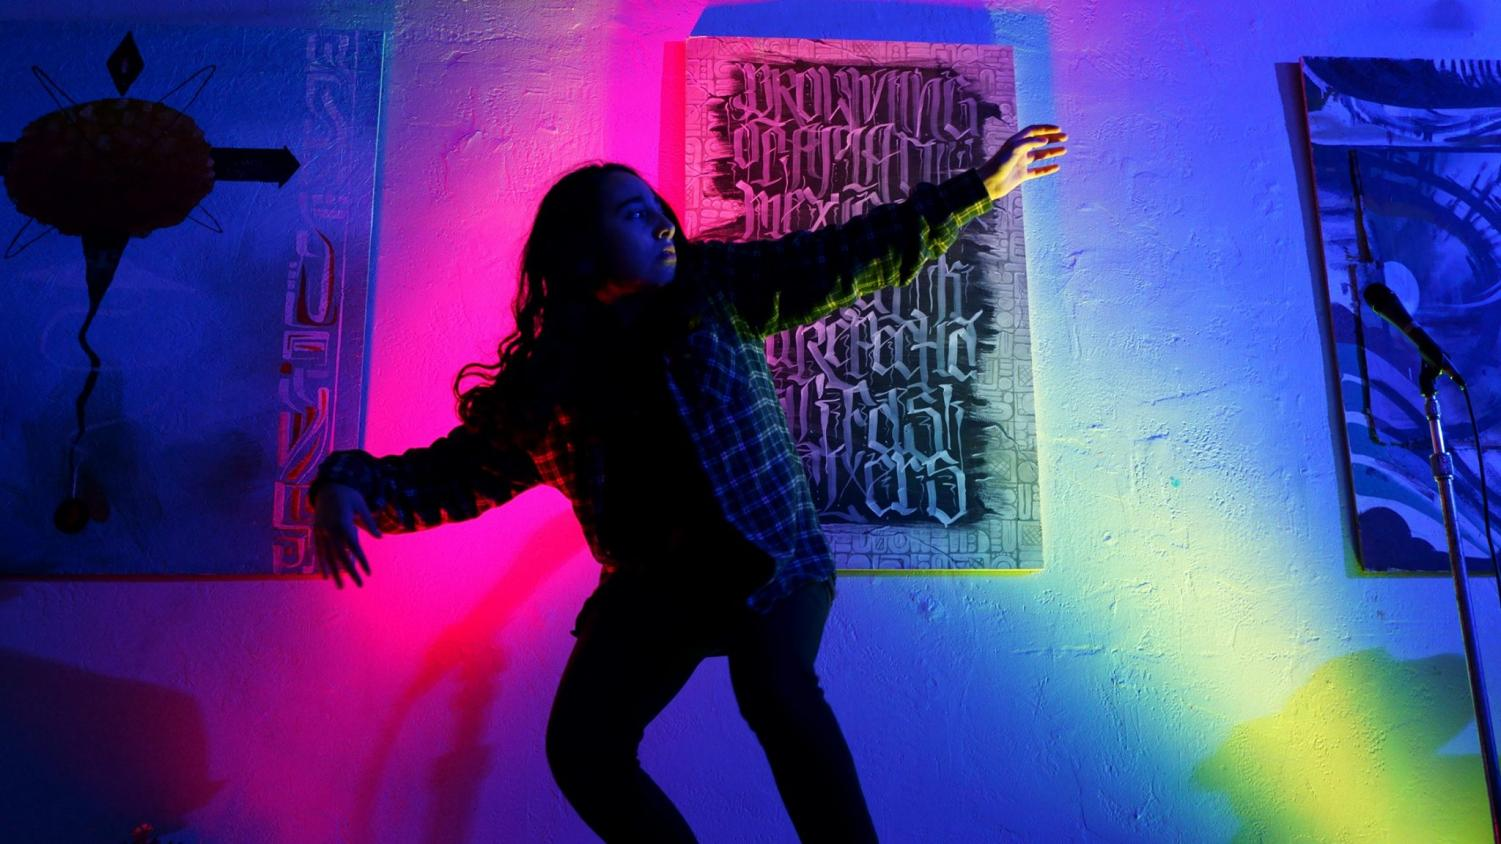 Dhani Del Toro dances in a dark lit room.